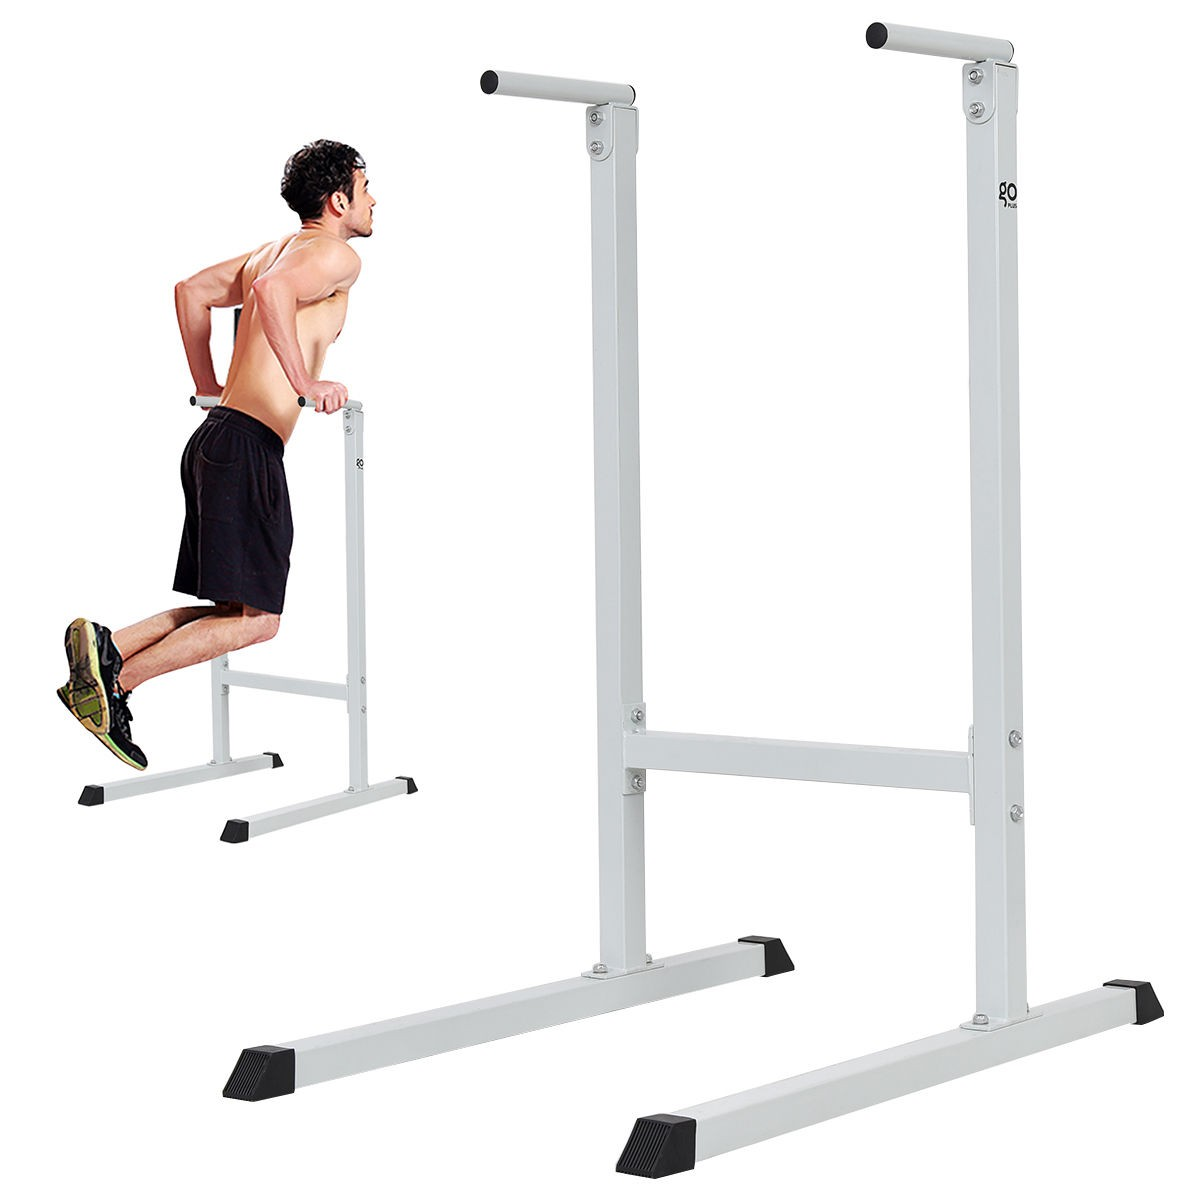 e2007f115f5 Its sleek black powder finish will make it a great addition to any home gym.  Start pumping up those shoulders and triceps with this new dip station.